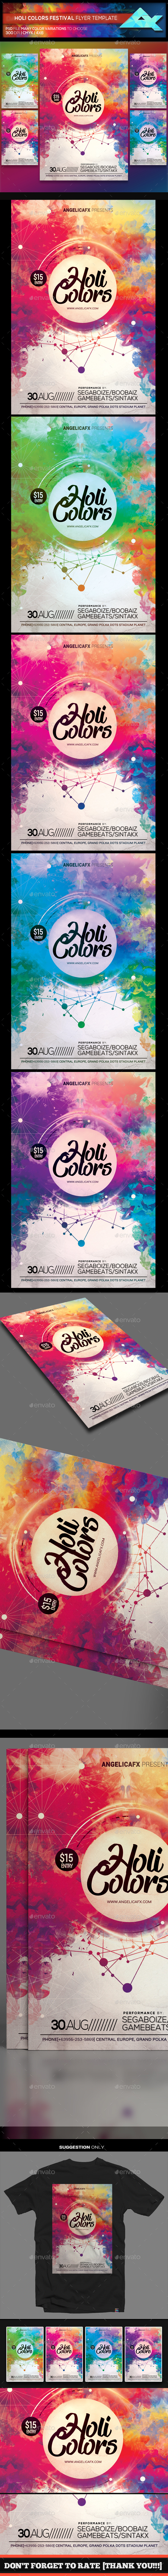 GraphicRiver Holi Colors Music Festival Flyer Template 21042845